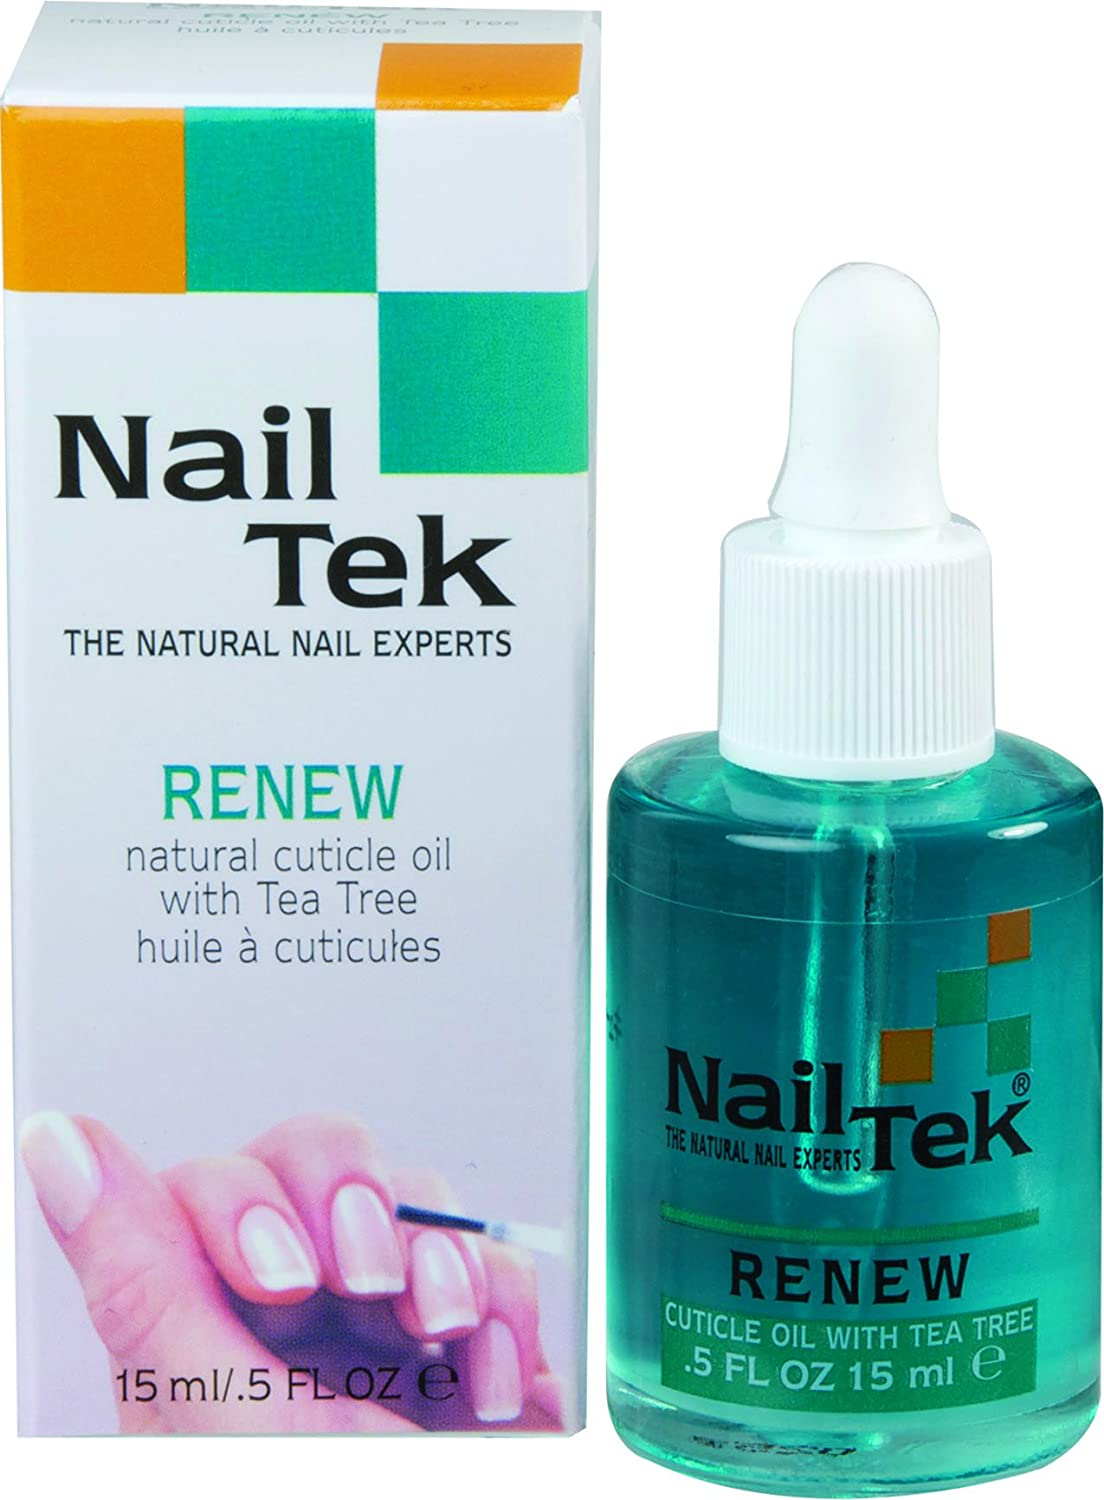 Nailtek Renew Natural Cuticle Oil with Tea Tree, 0.5 Fluid Ounce 809